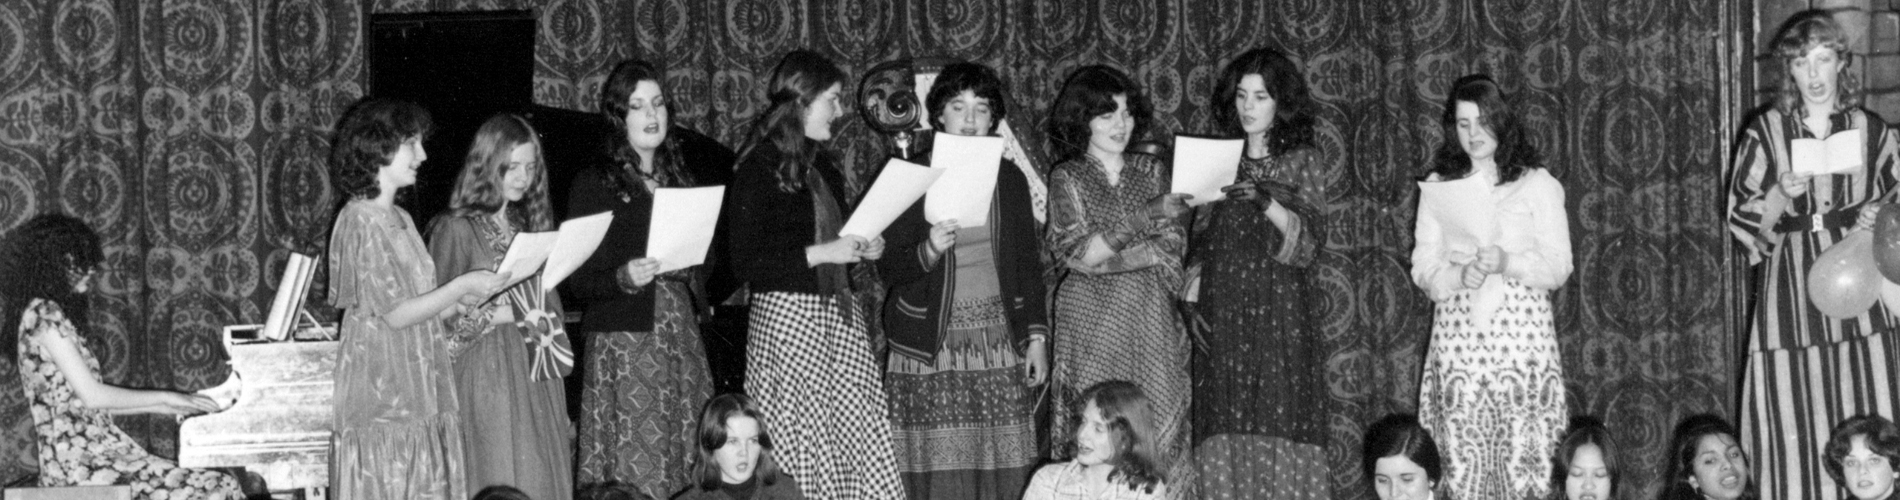 1977 Patriotic Songs Concert